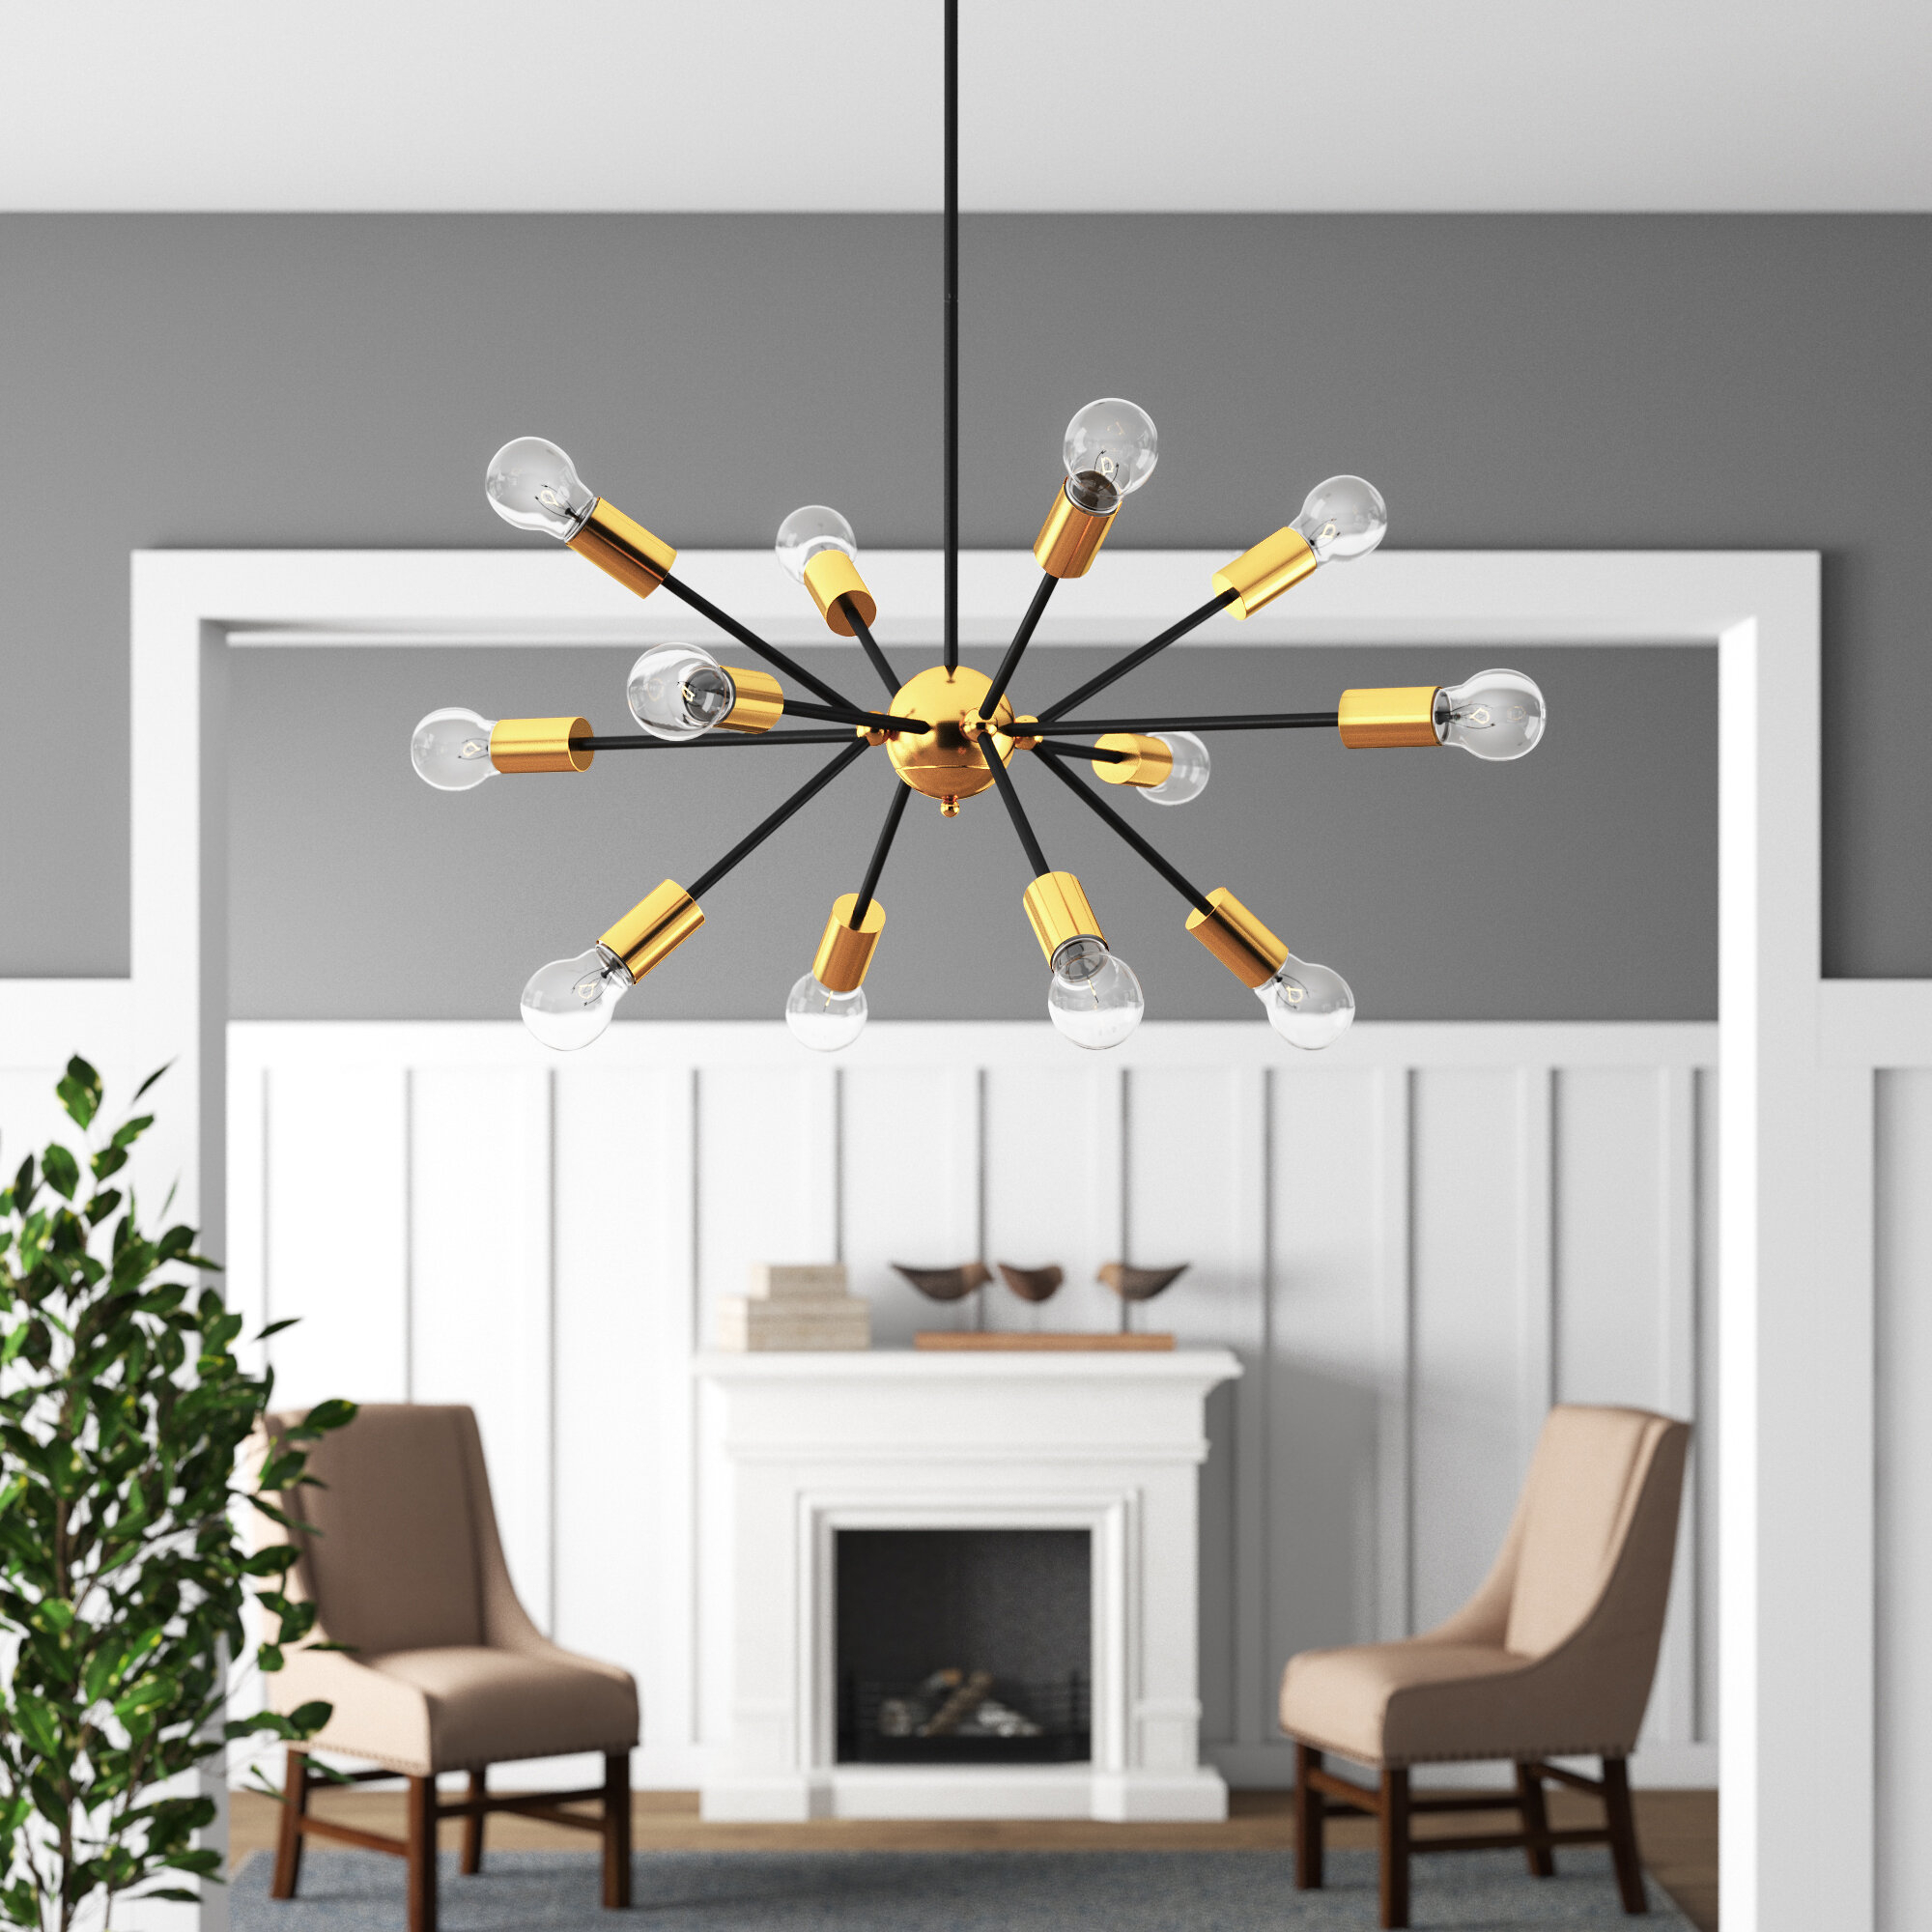 Dorcia 12 Light Sputnik Chandelier With Corona 12 Light Sputnik Chandeliers (View 9 of 30)